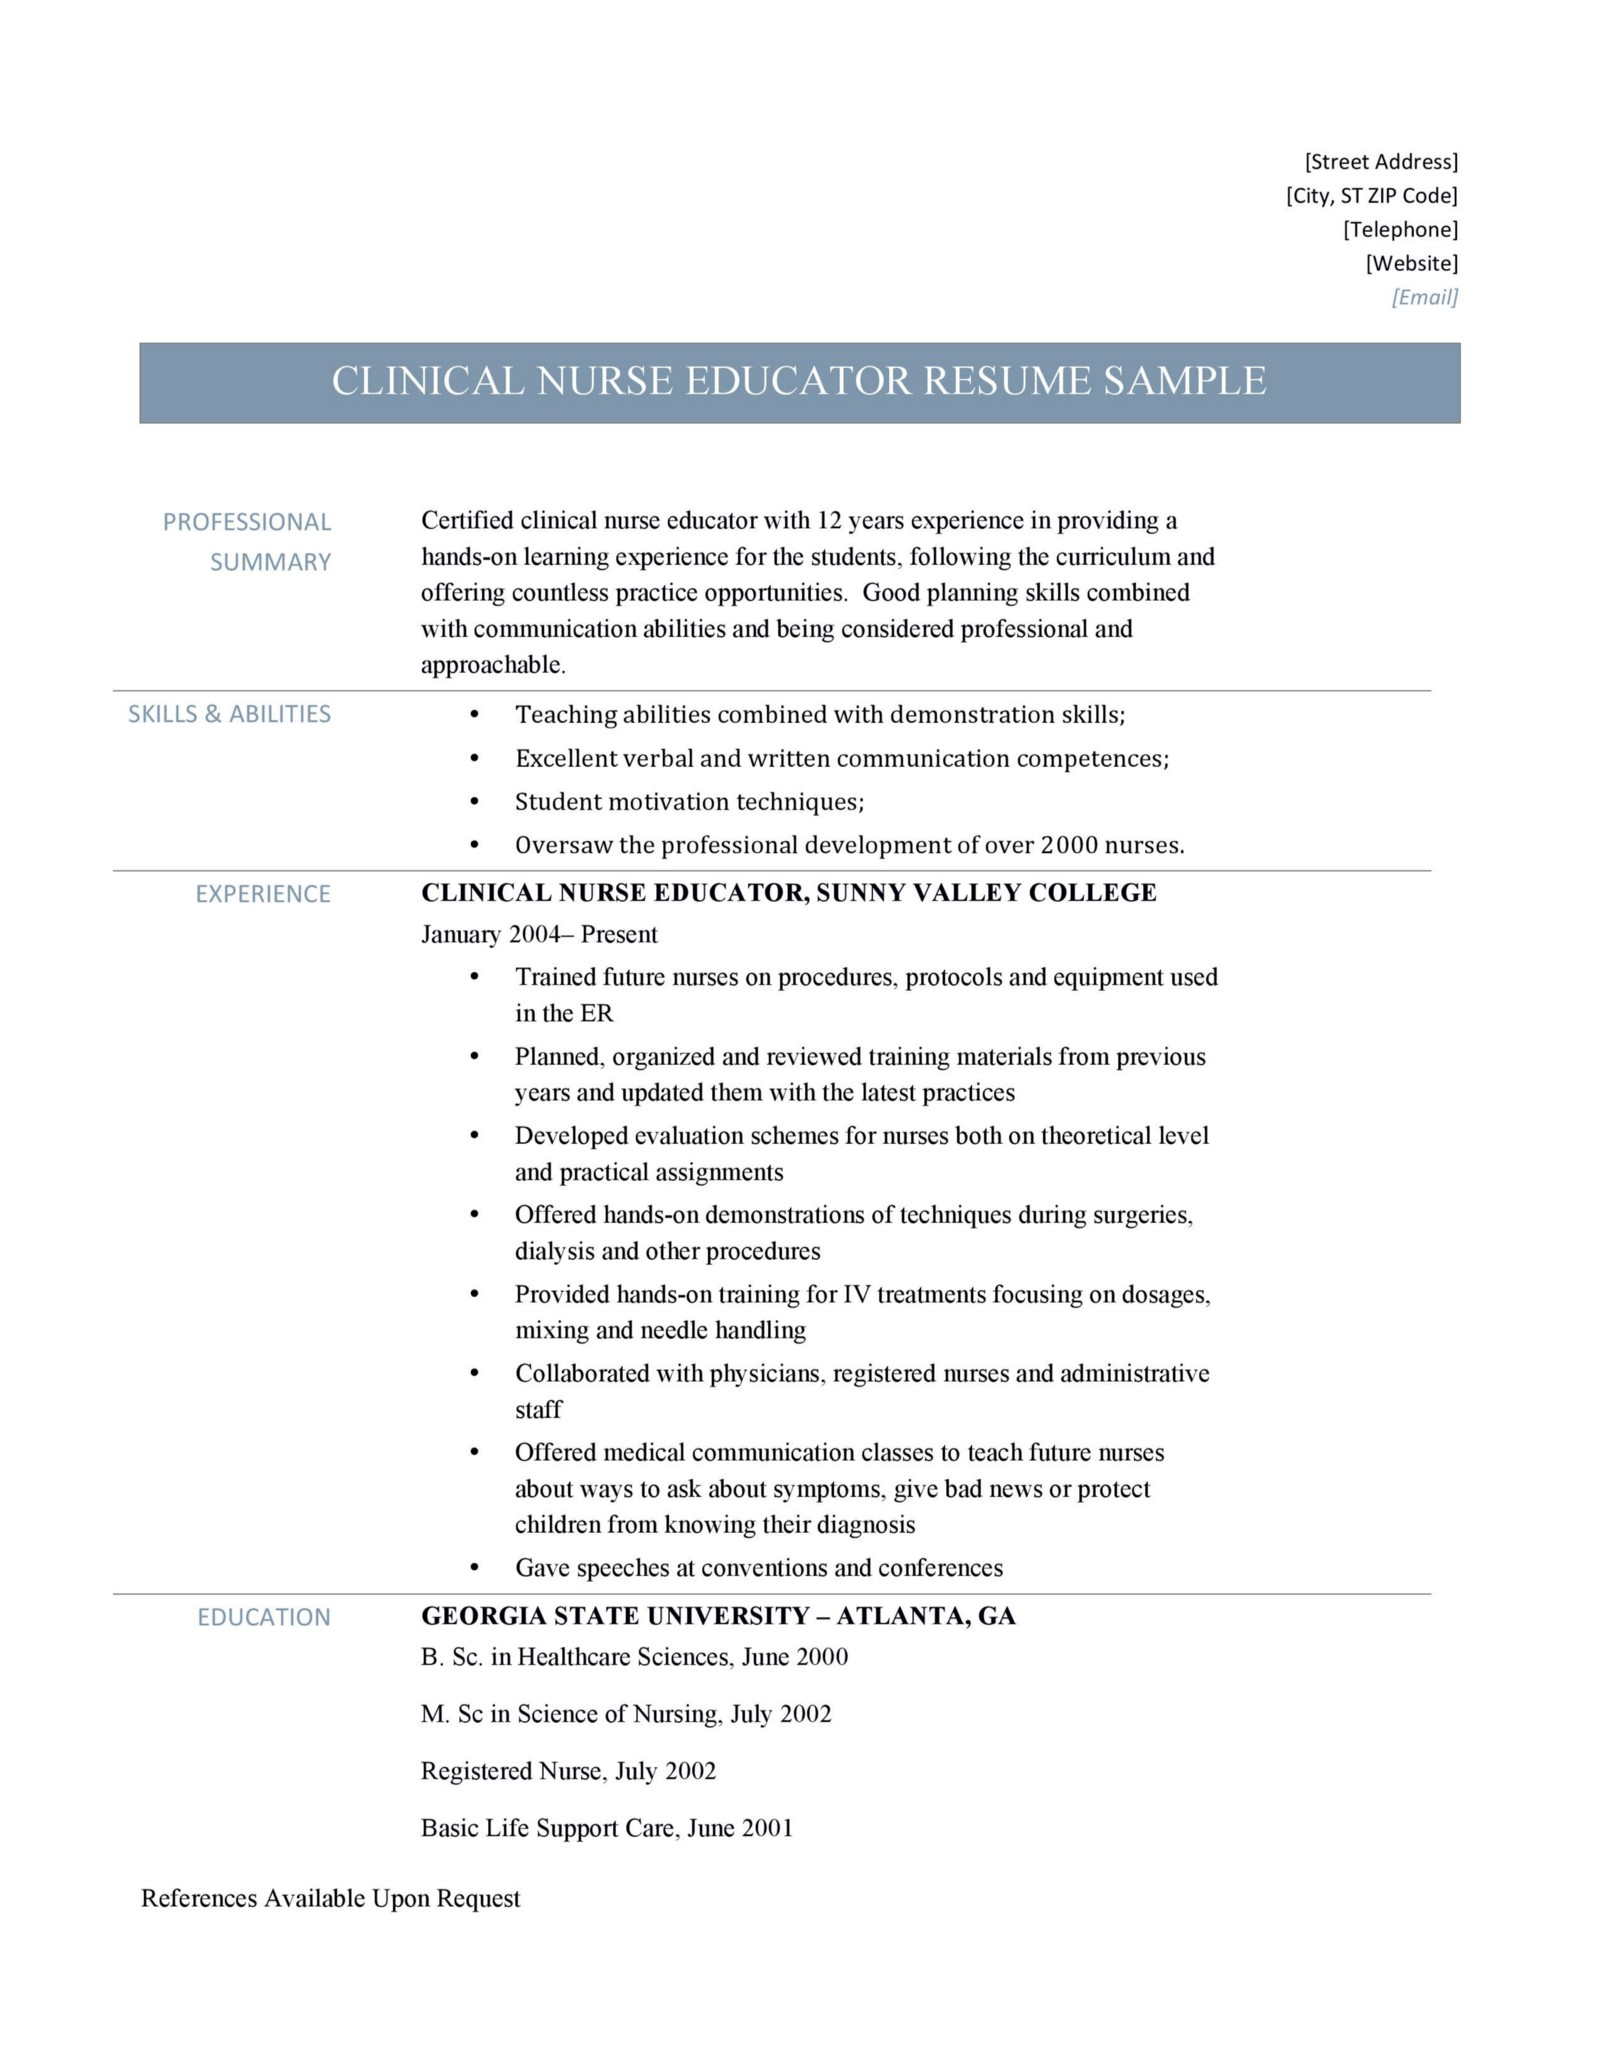 clinical nurse educator resume and template  u2013 online